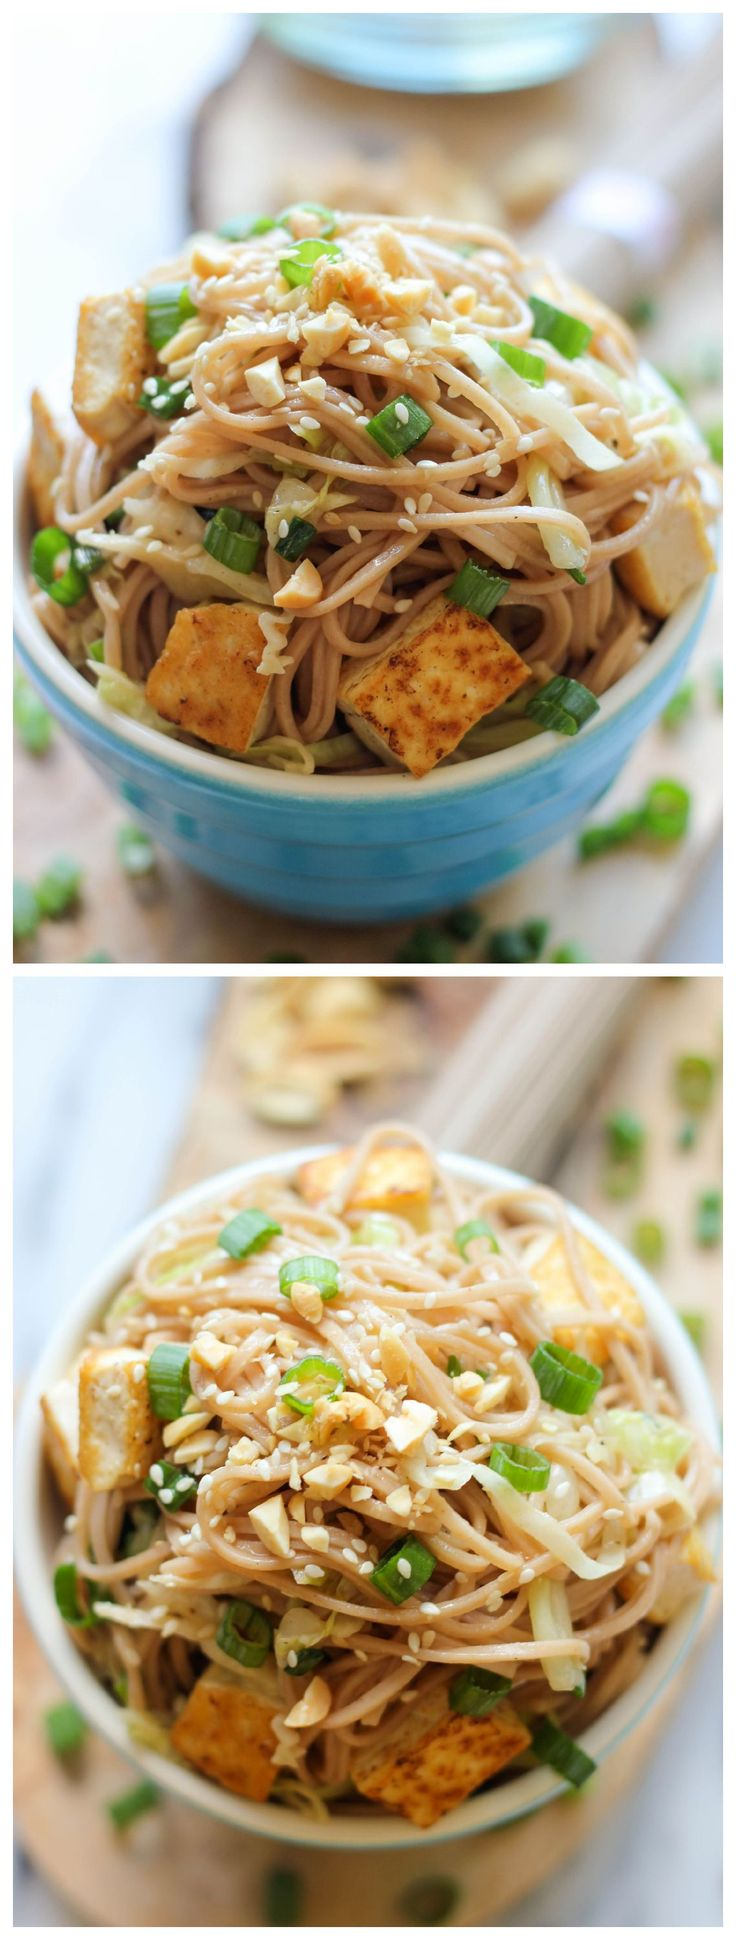 Tofu Soba Noodles - So healthy, so hearty, and so easy to make in less than 20 minutes! from damndelicious.net